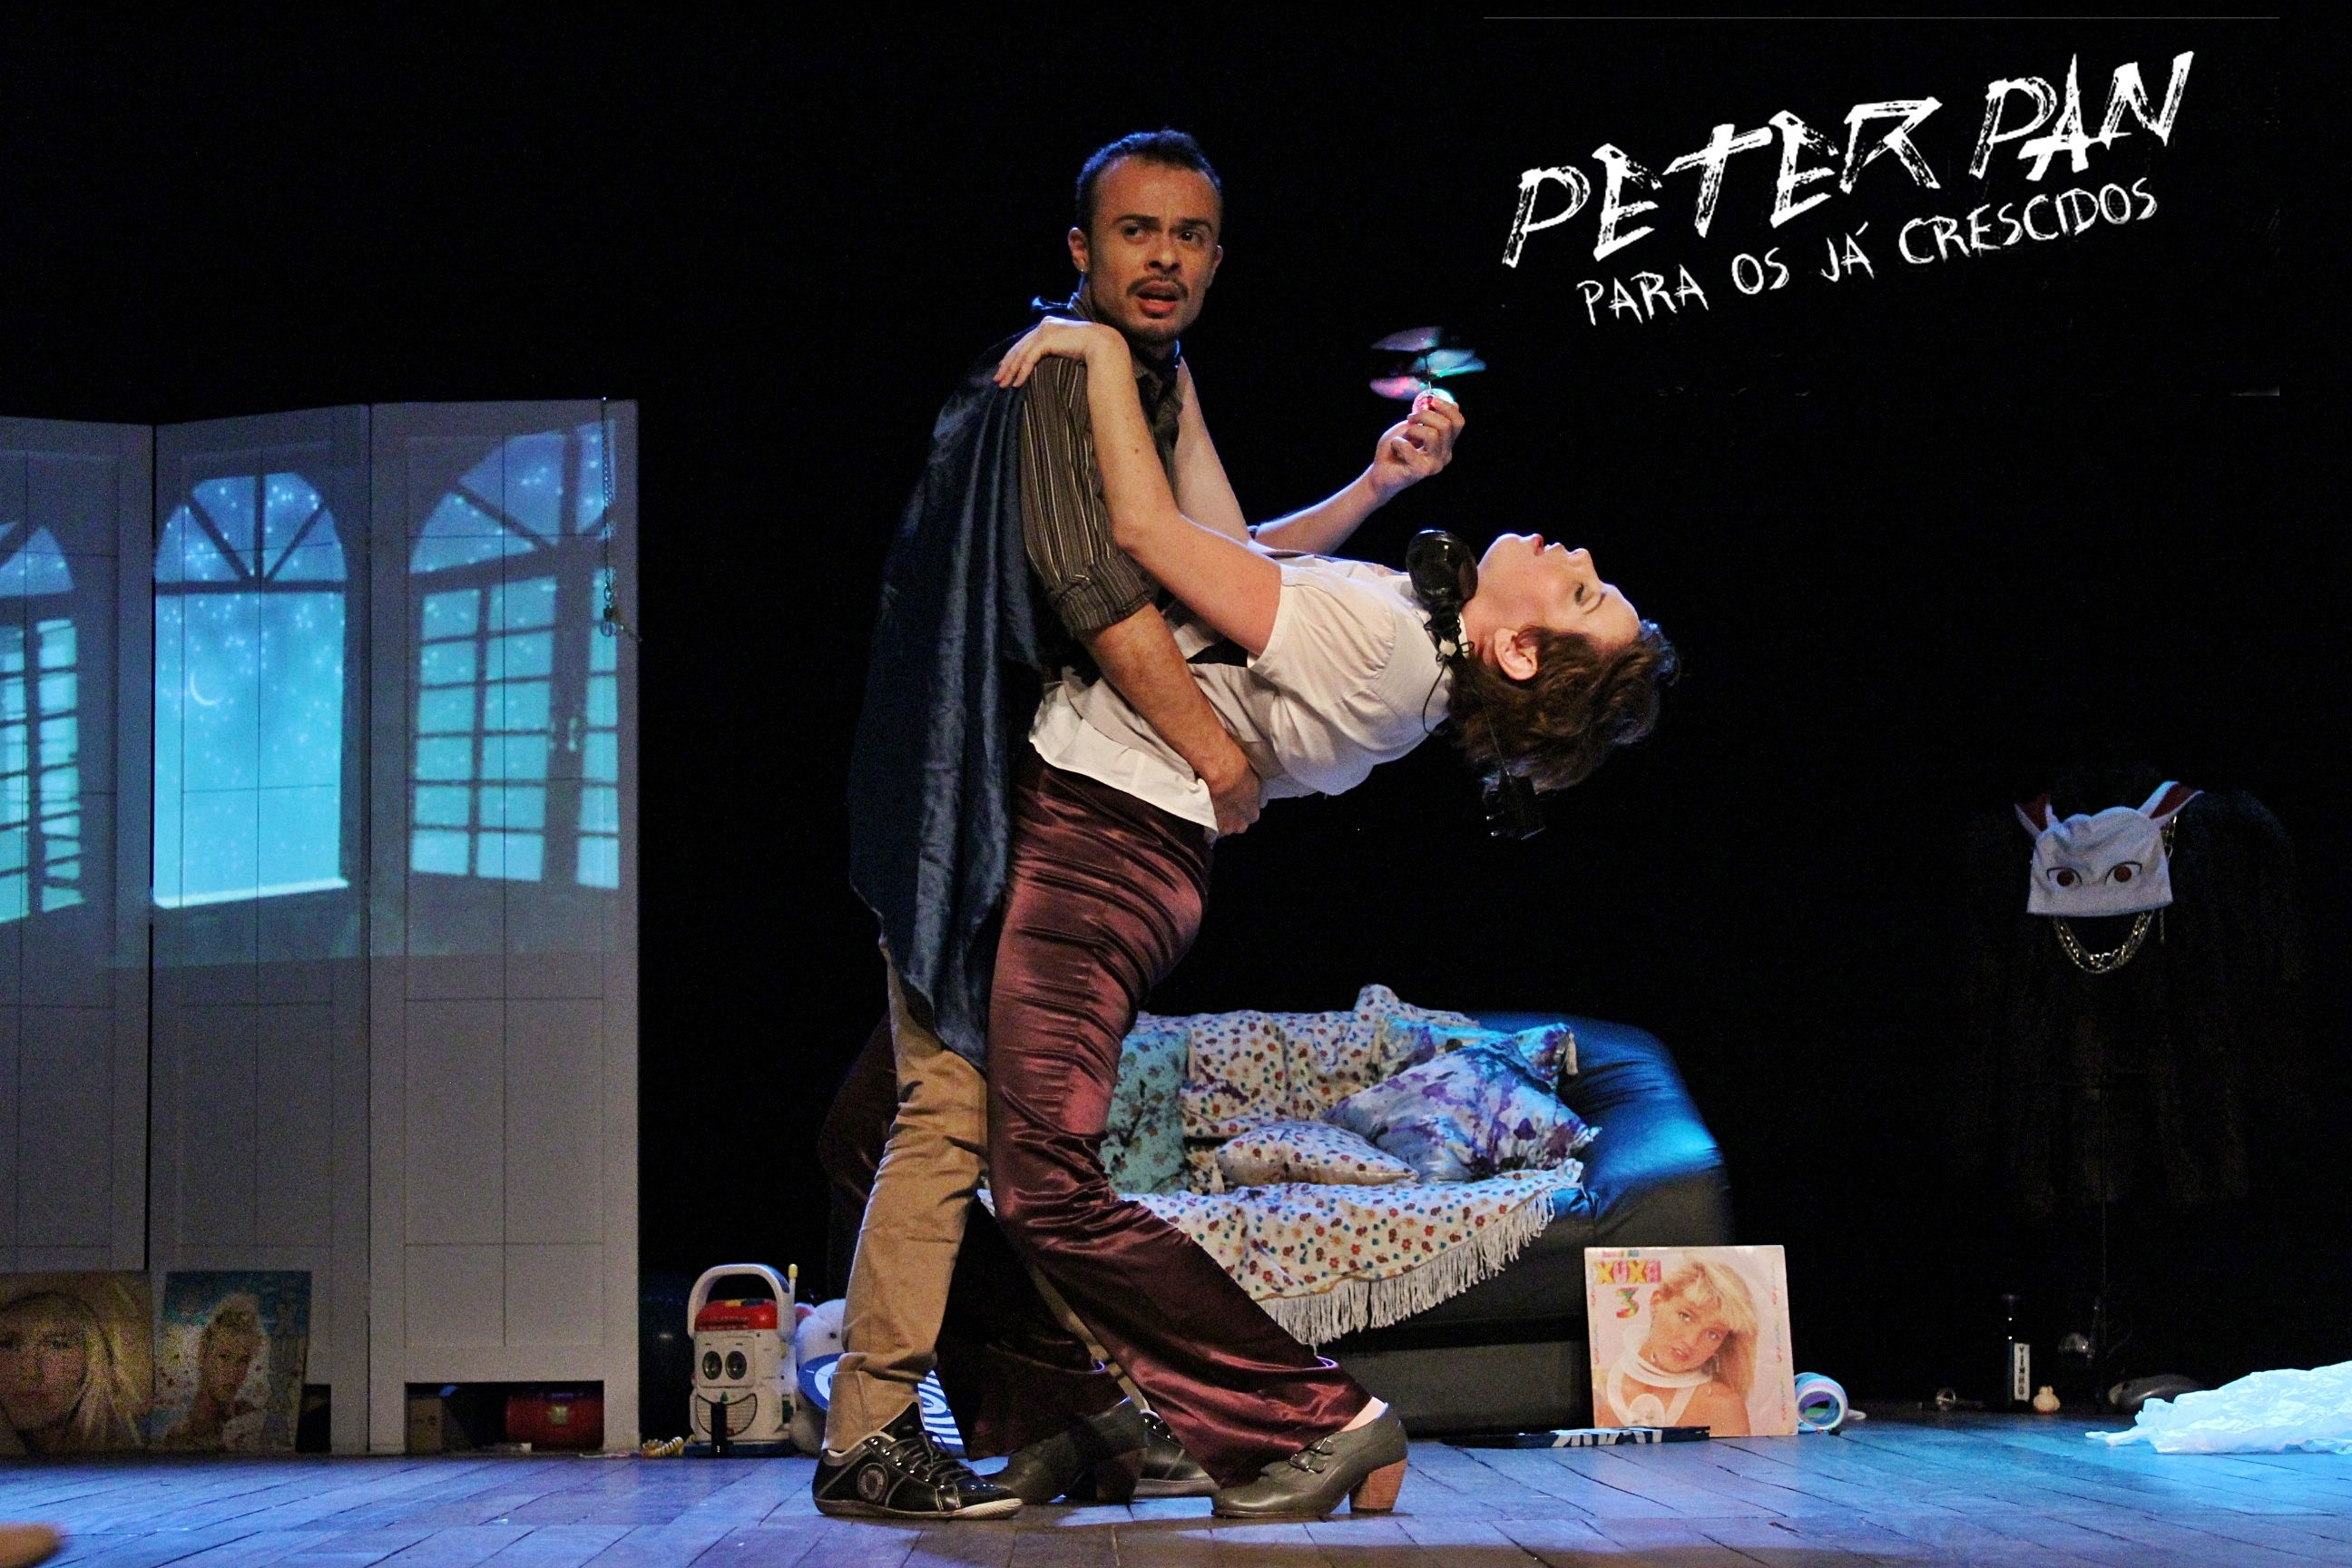 PETER PAN - Espetáculo Teatral